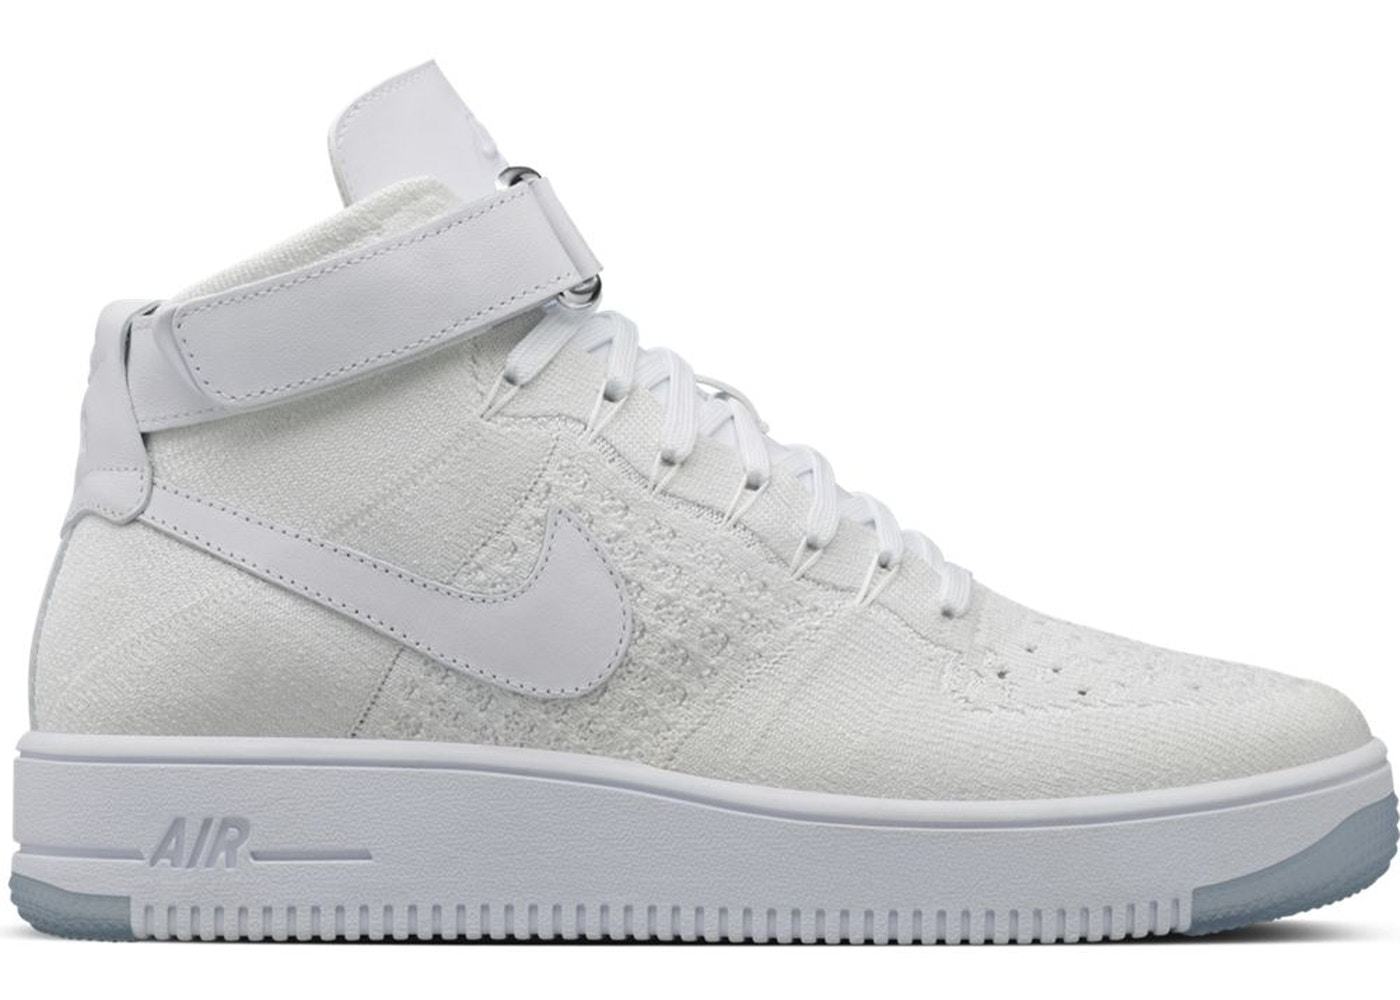 new arrival 1210f ce2ac Air Force 1 Ultra Flyknit Mid Triple White